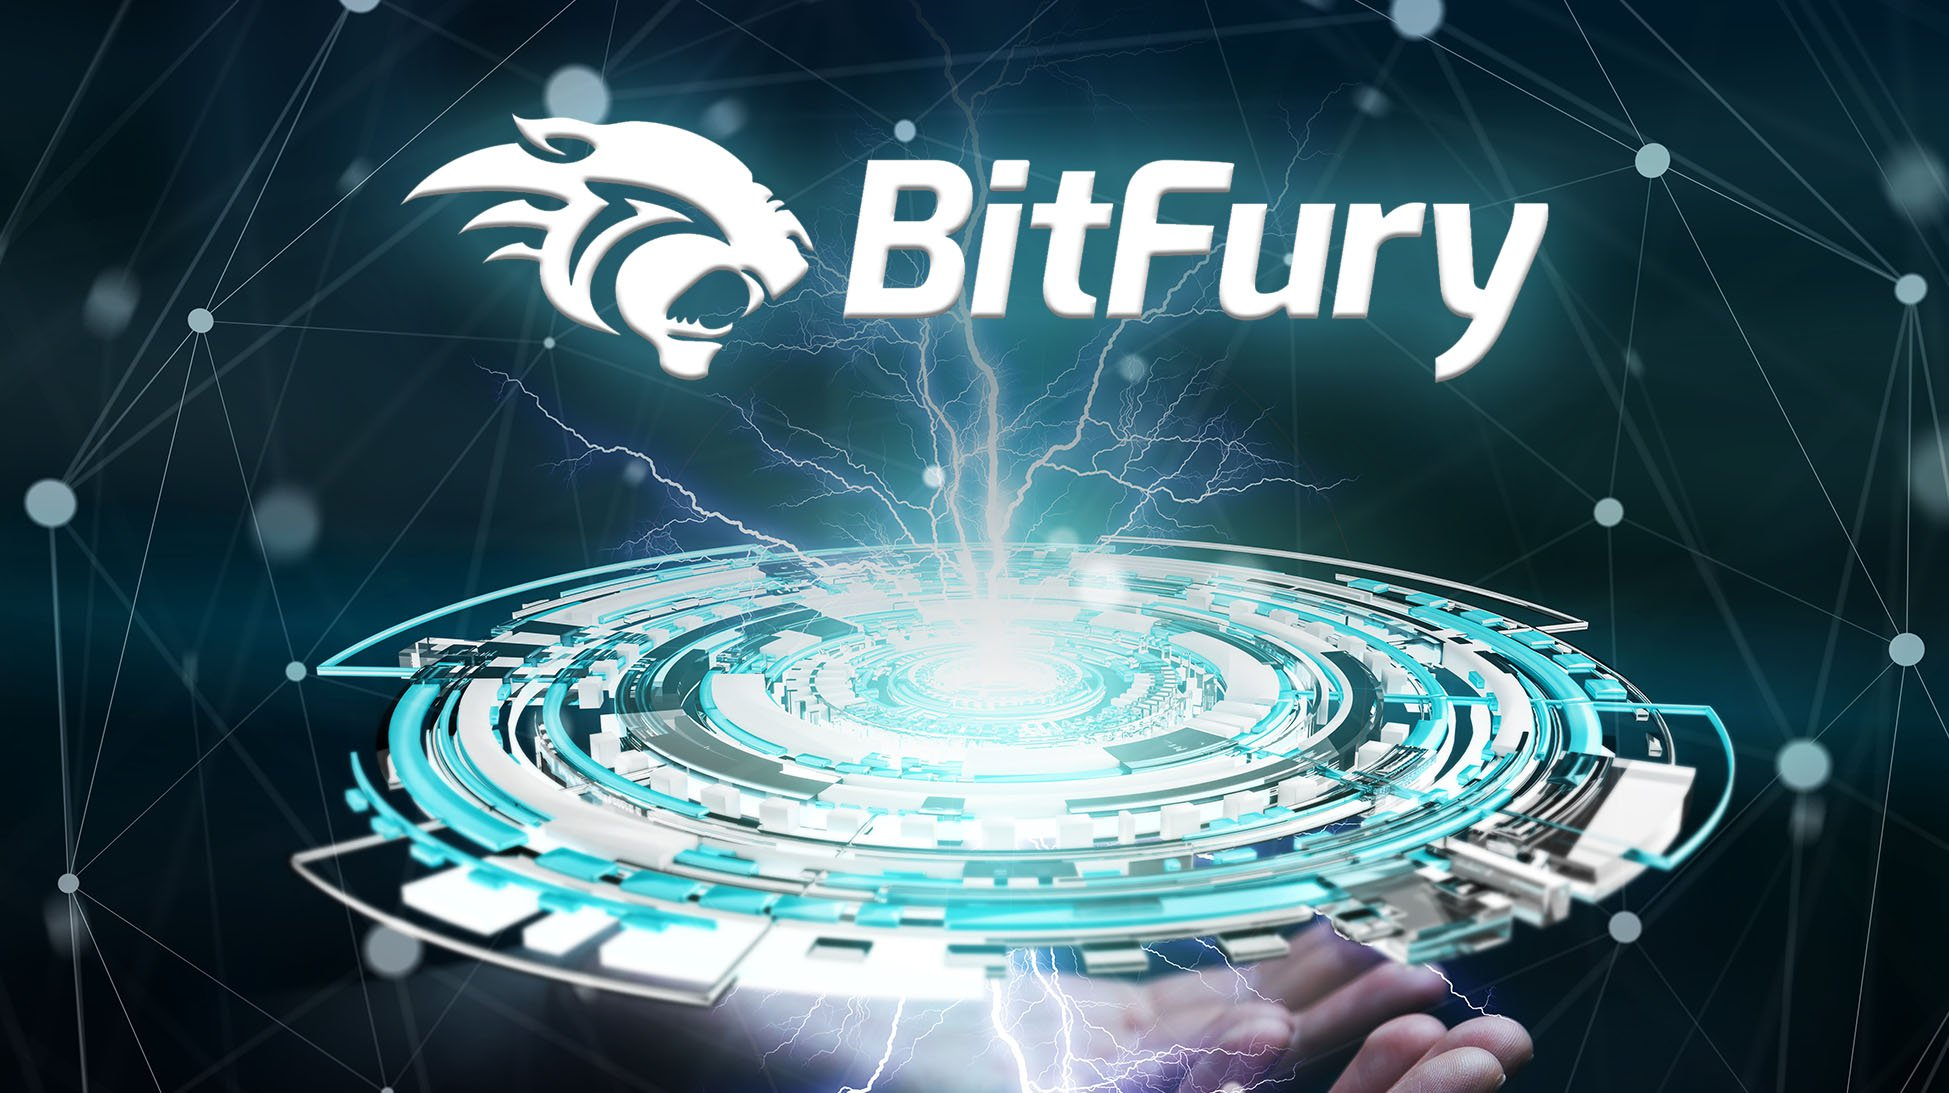 Bloomberg: European Crypto Mining Firm Bitfury Considers Going Public